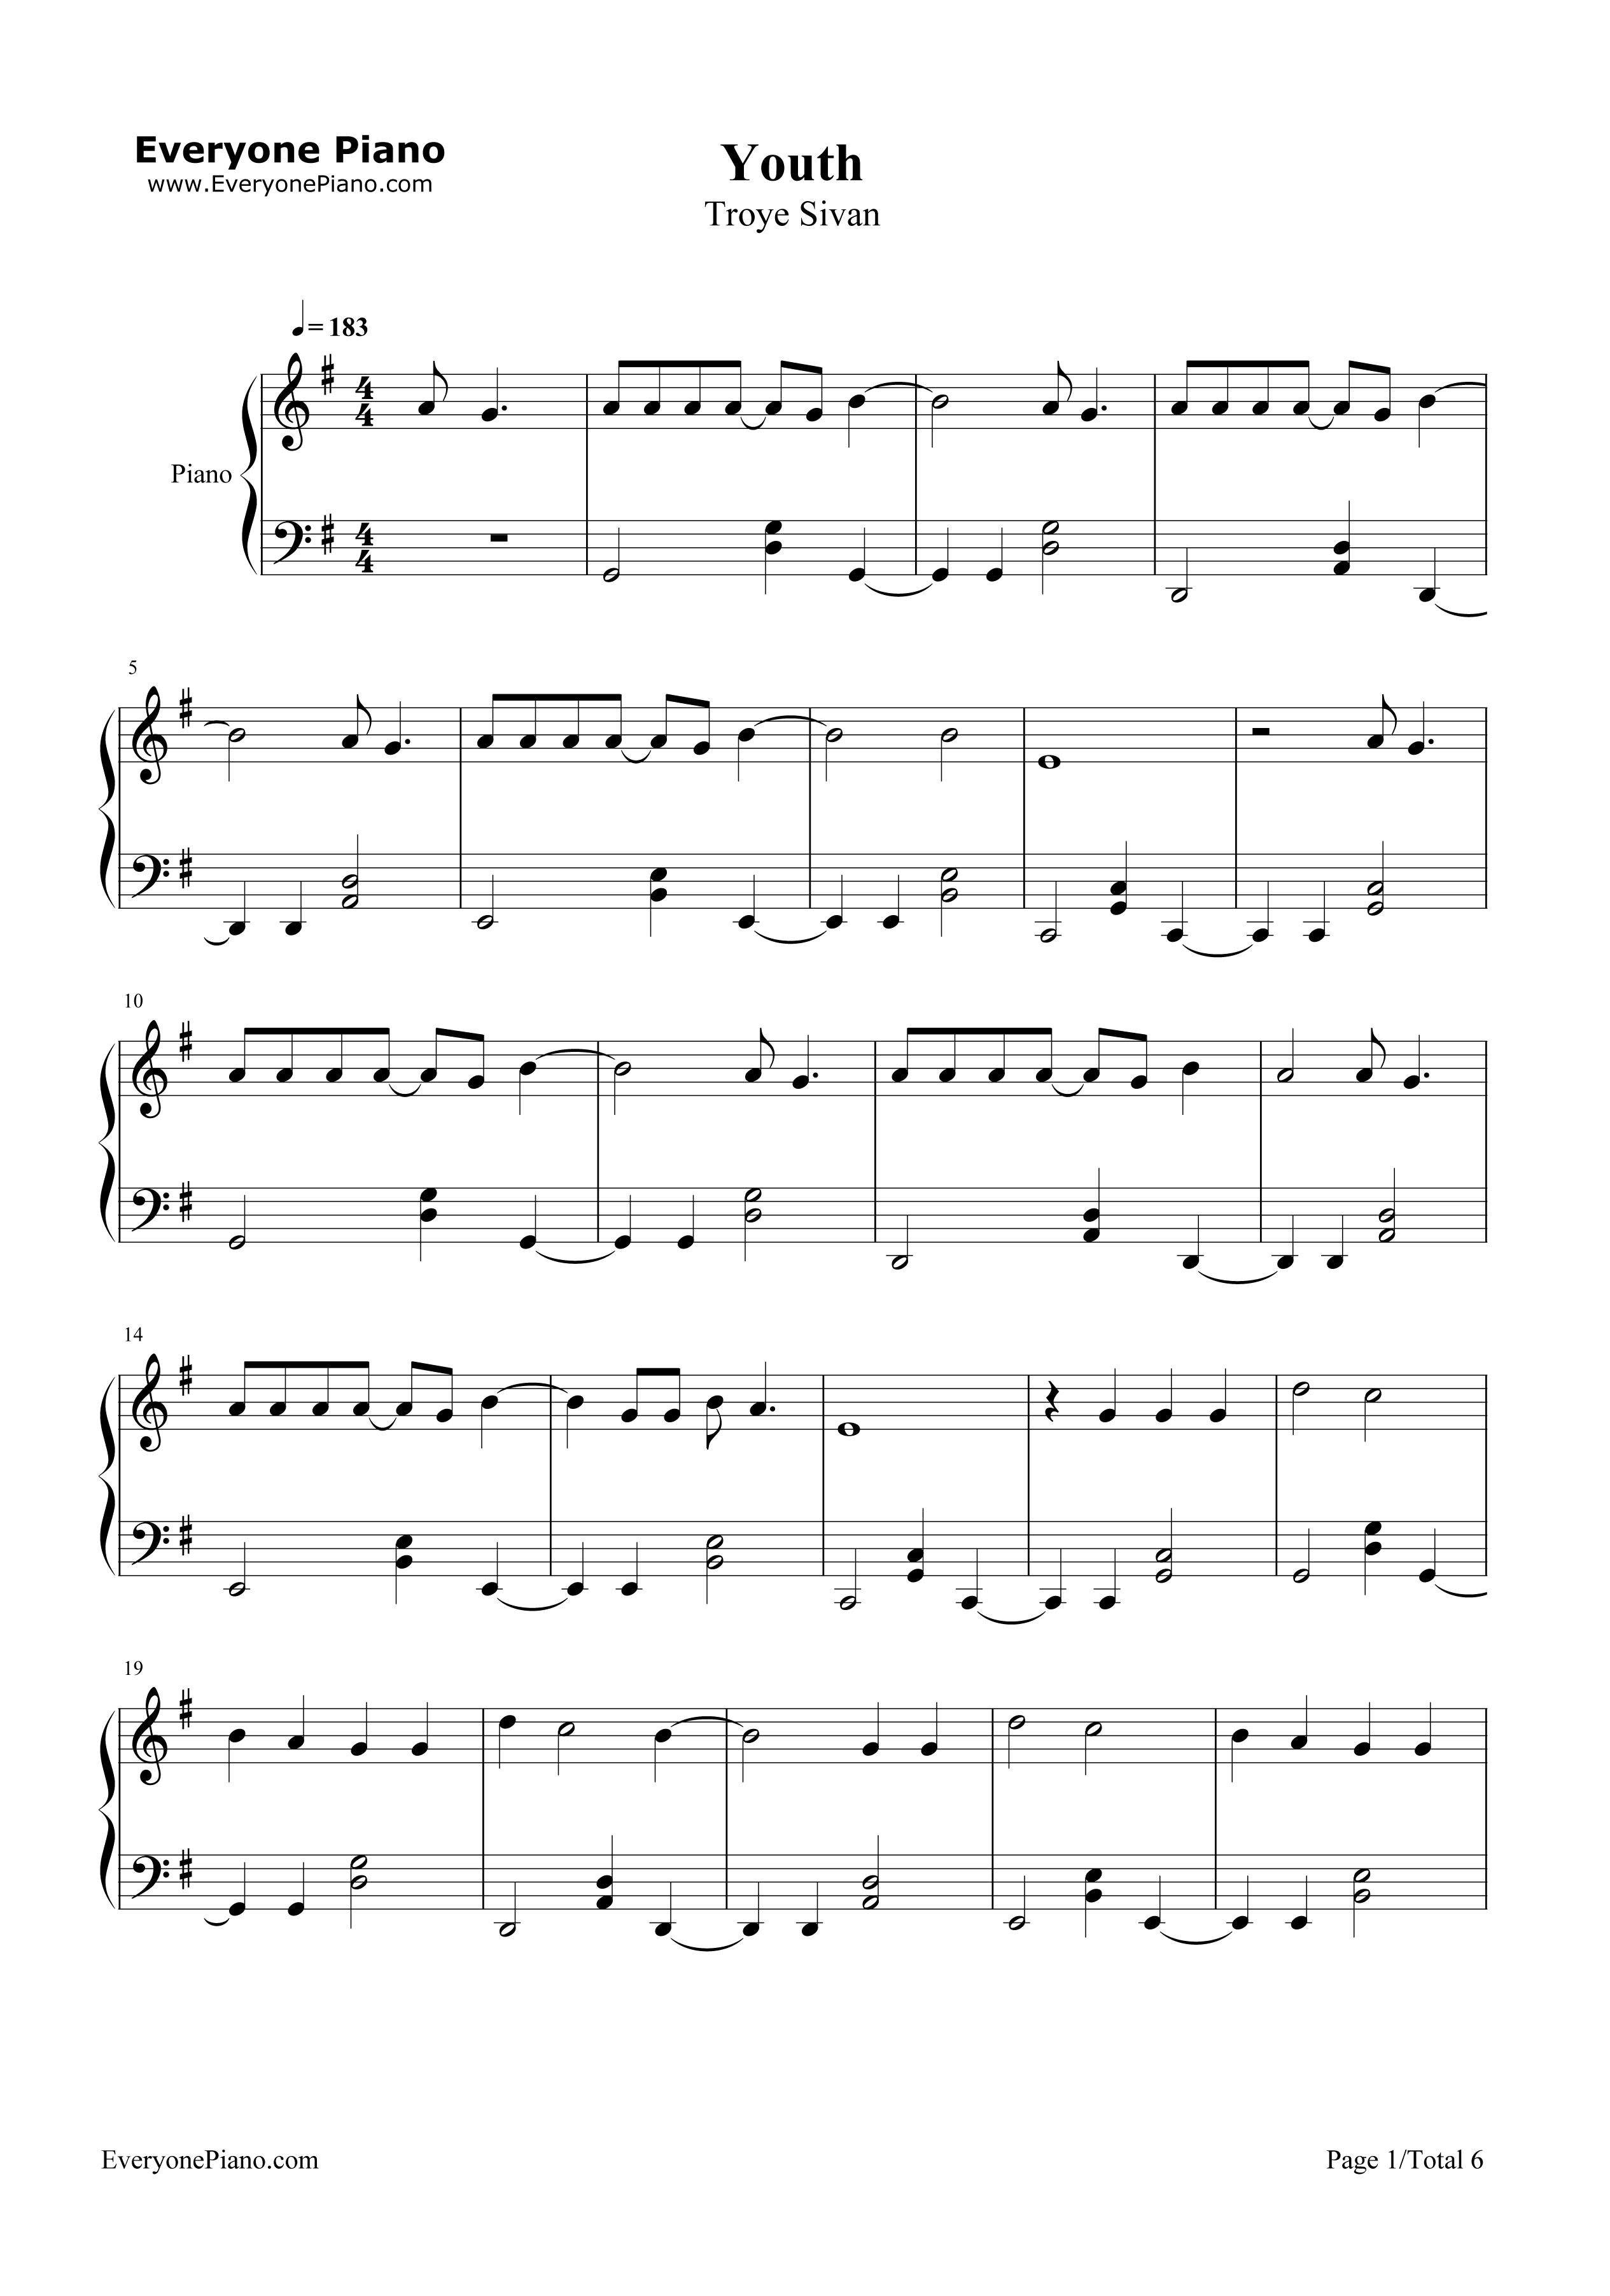 Youth Troye Sivan Stave Preview 1 Free Piano Sheet Music